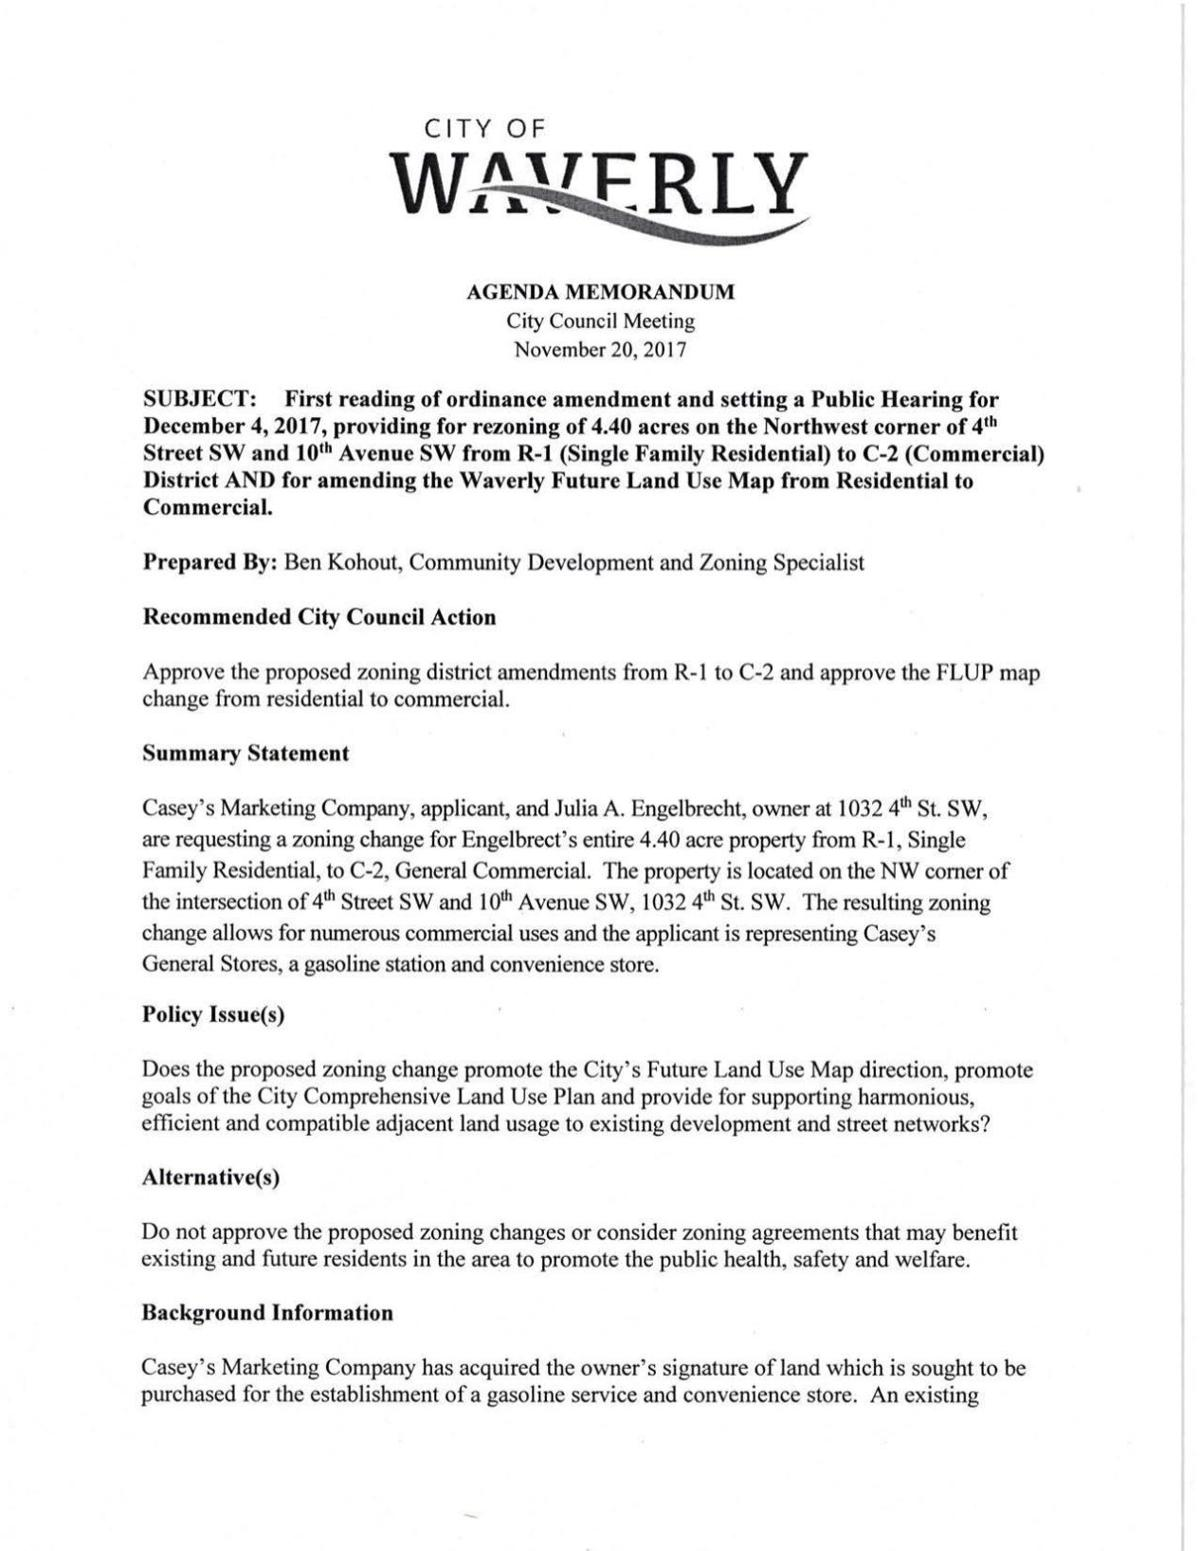 Ordinance regarding new zoning for proposed Casey's in Waverly